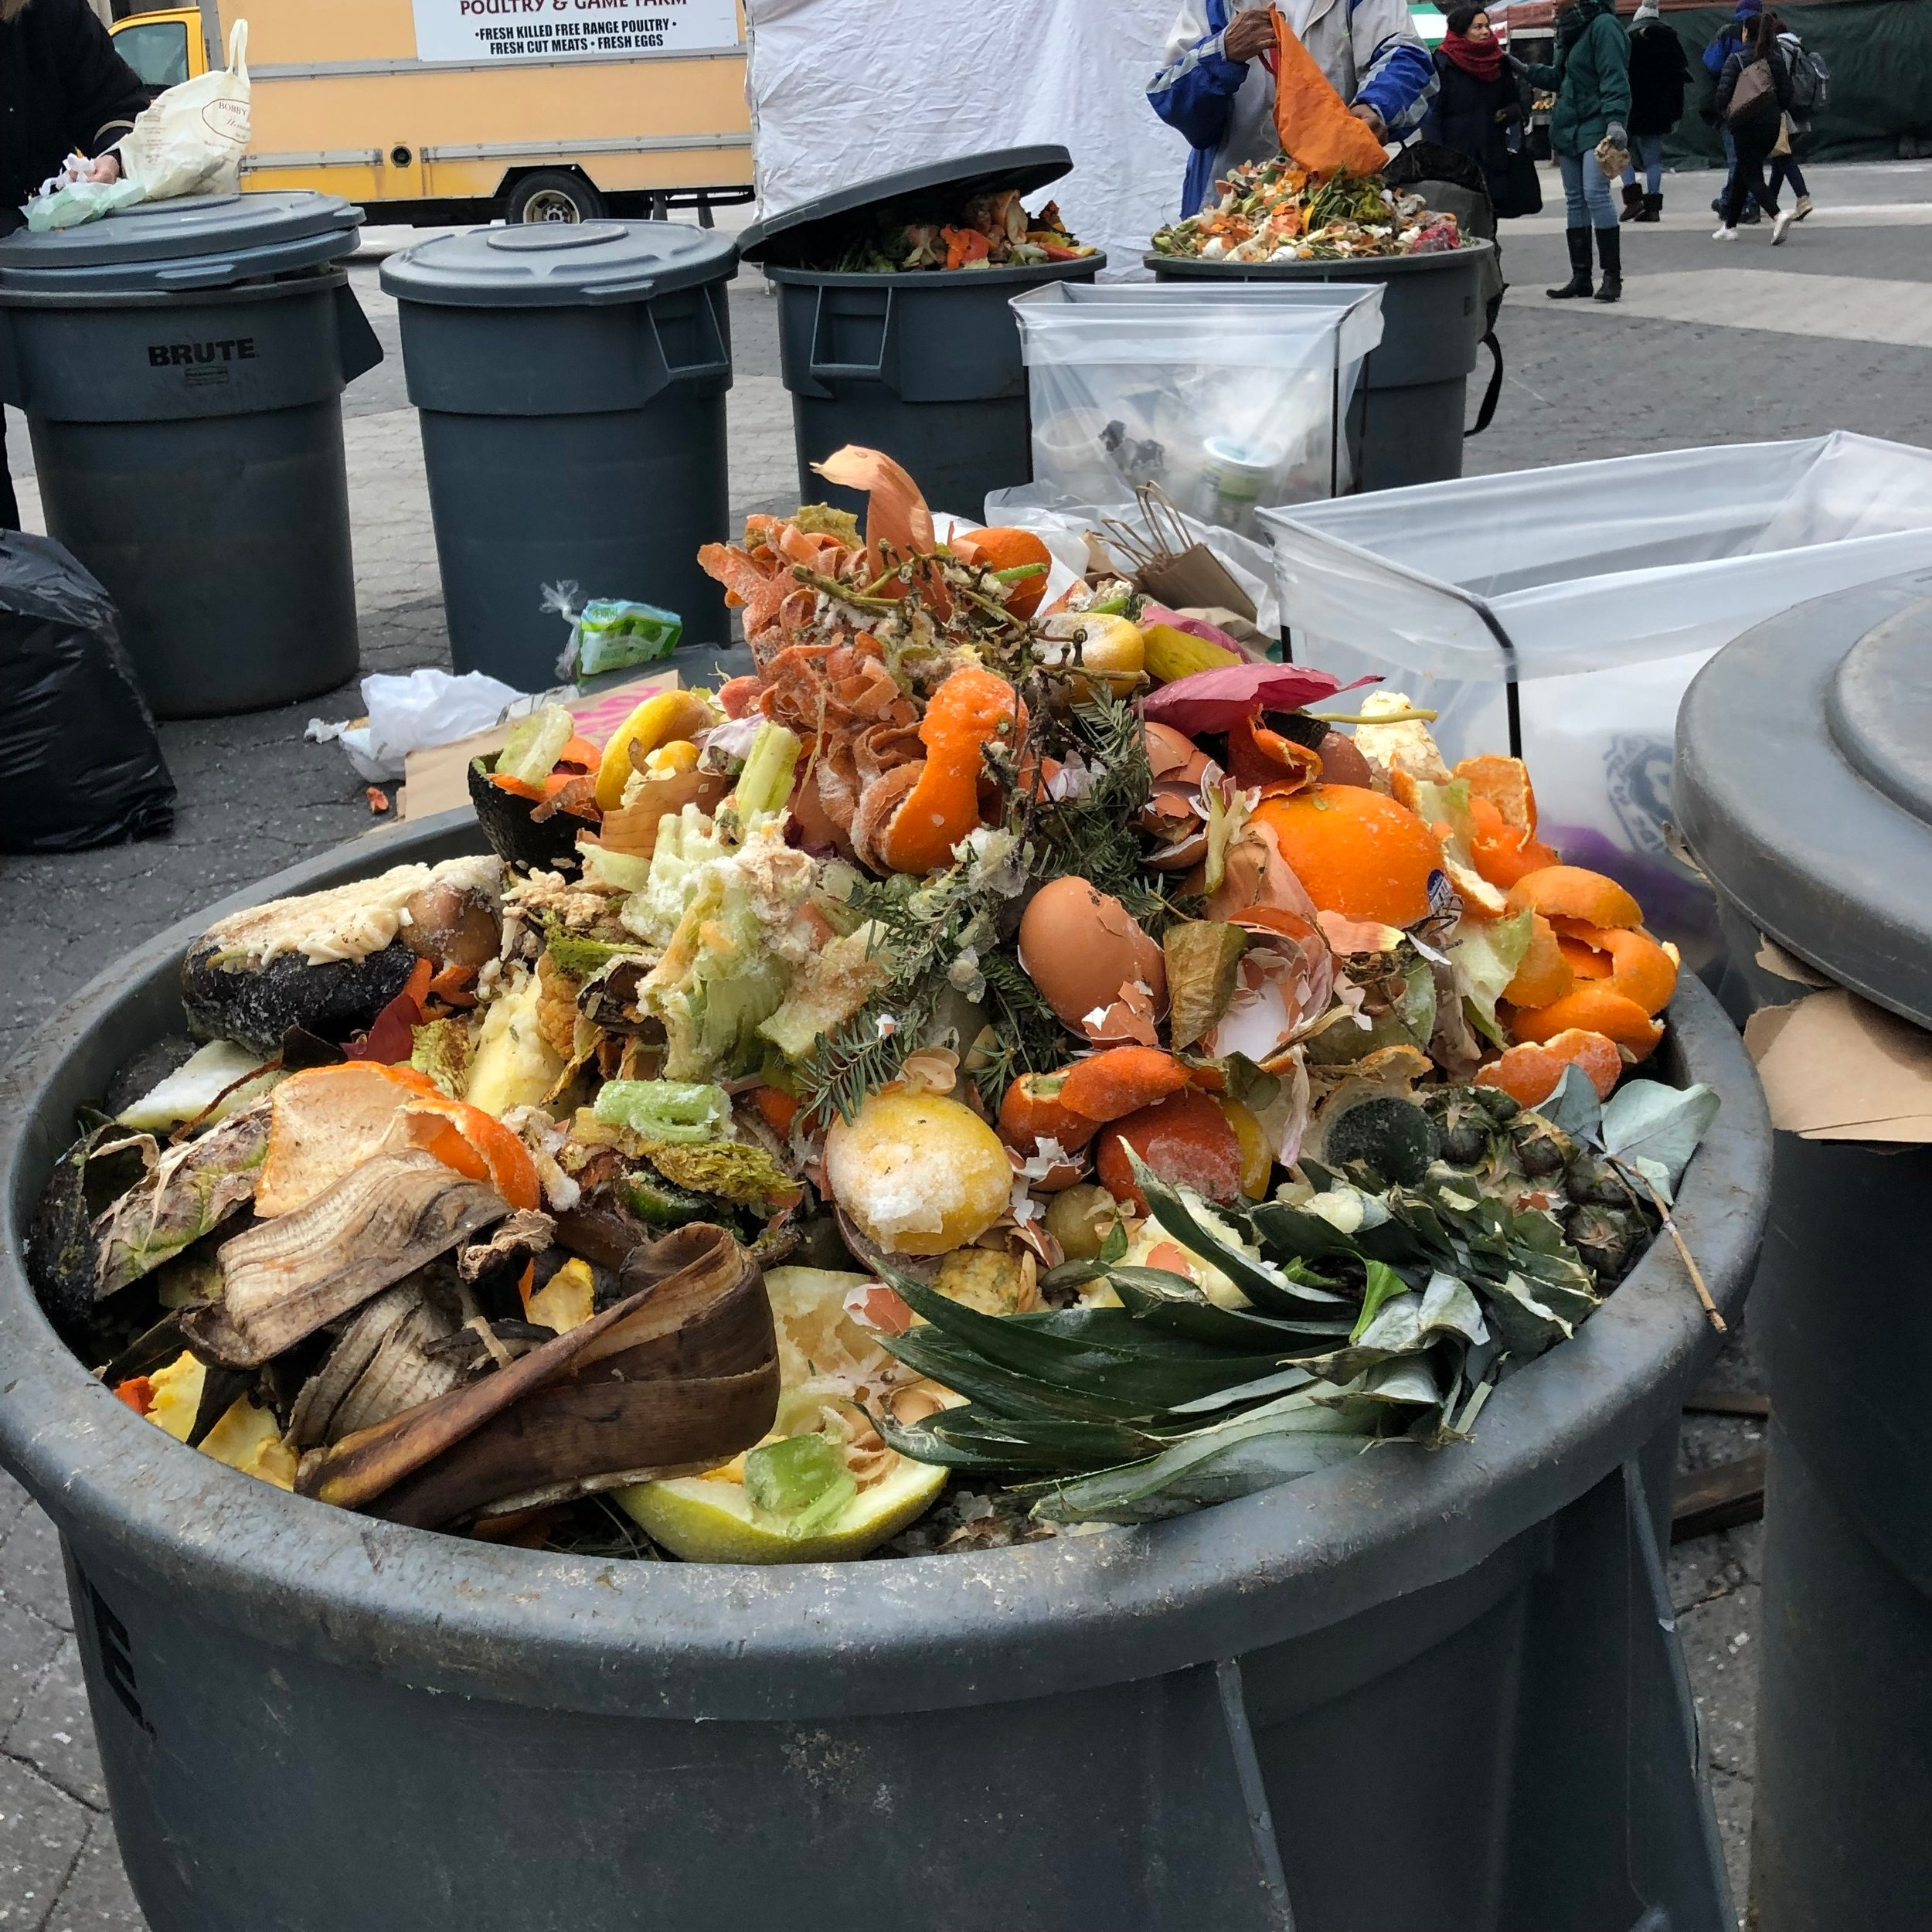 An overflowing food scraps bin at Union Square. Have you ever seen anything so beautiful!?!